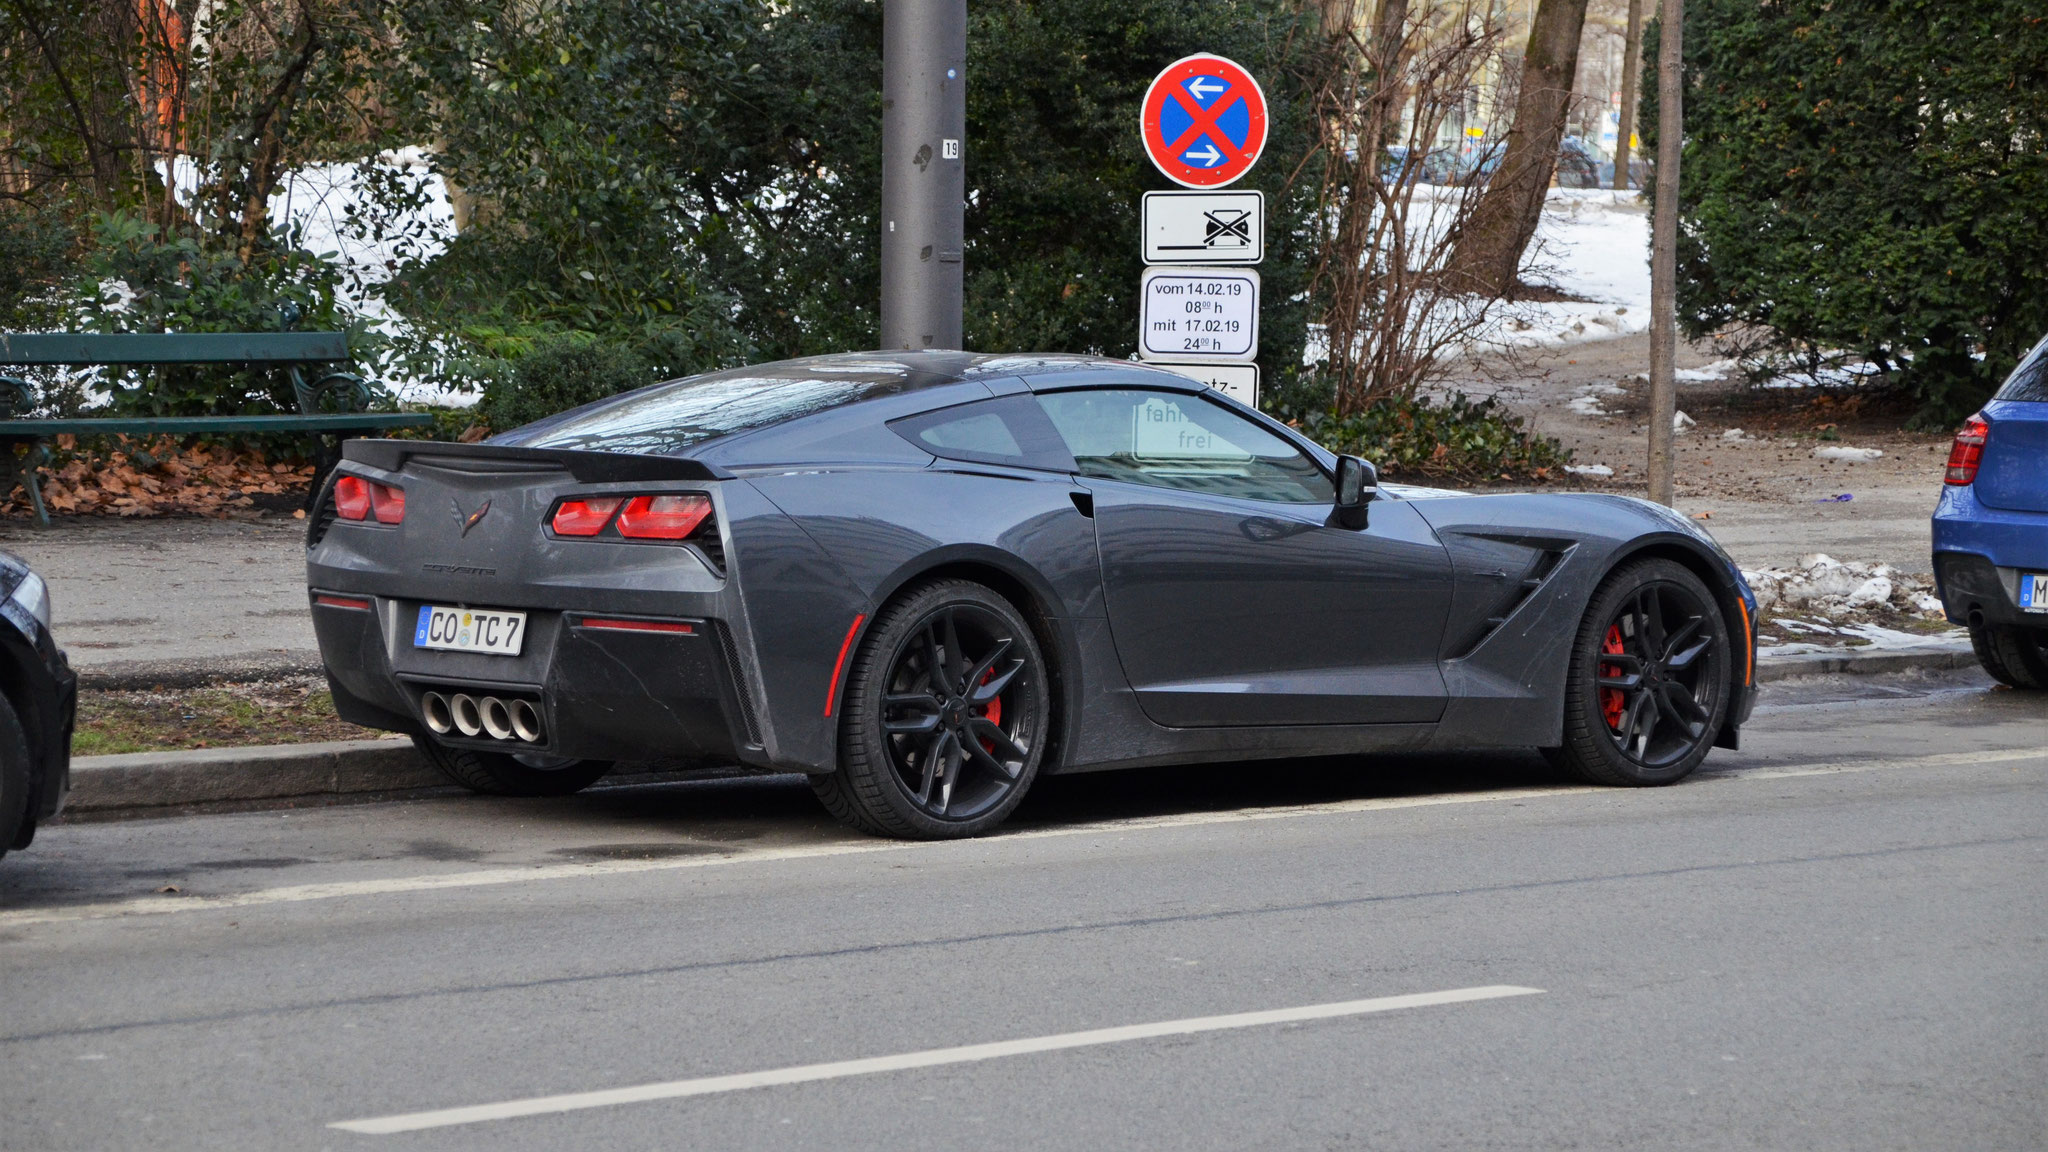 Chevrolet Corvette C7 Stingray - CO-TC-7